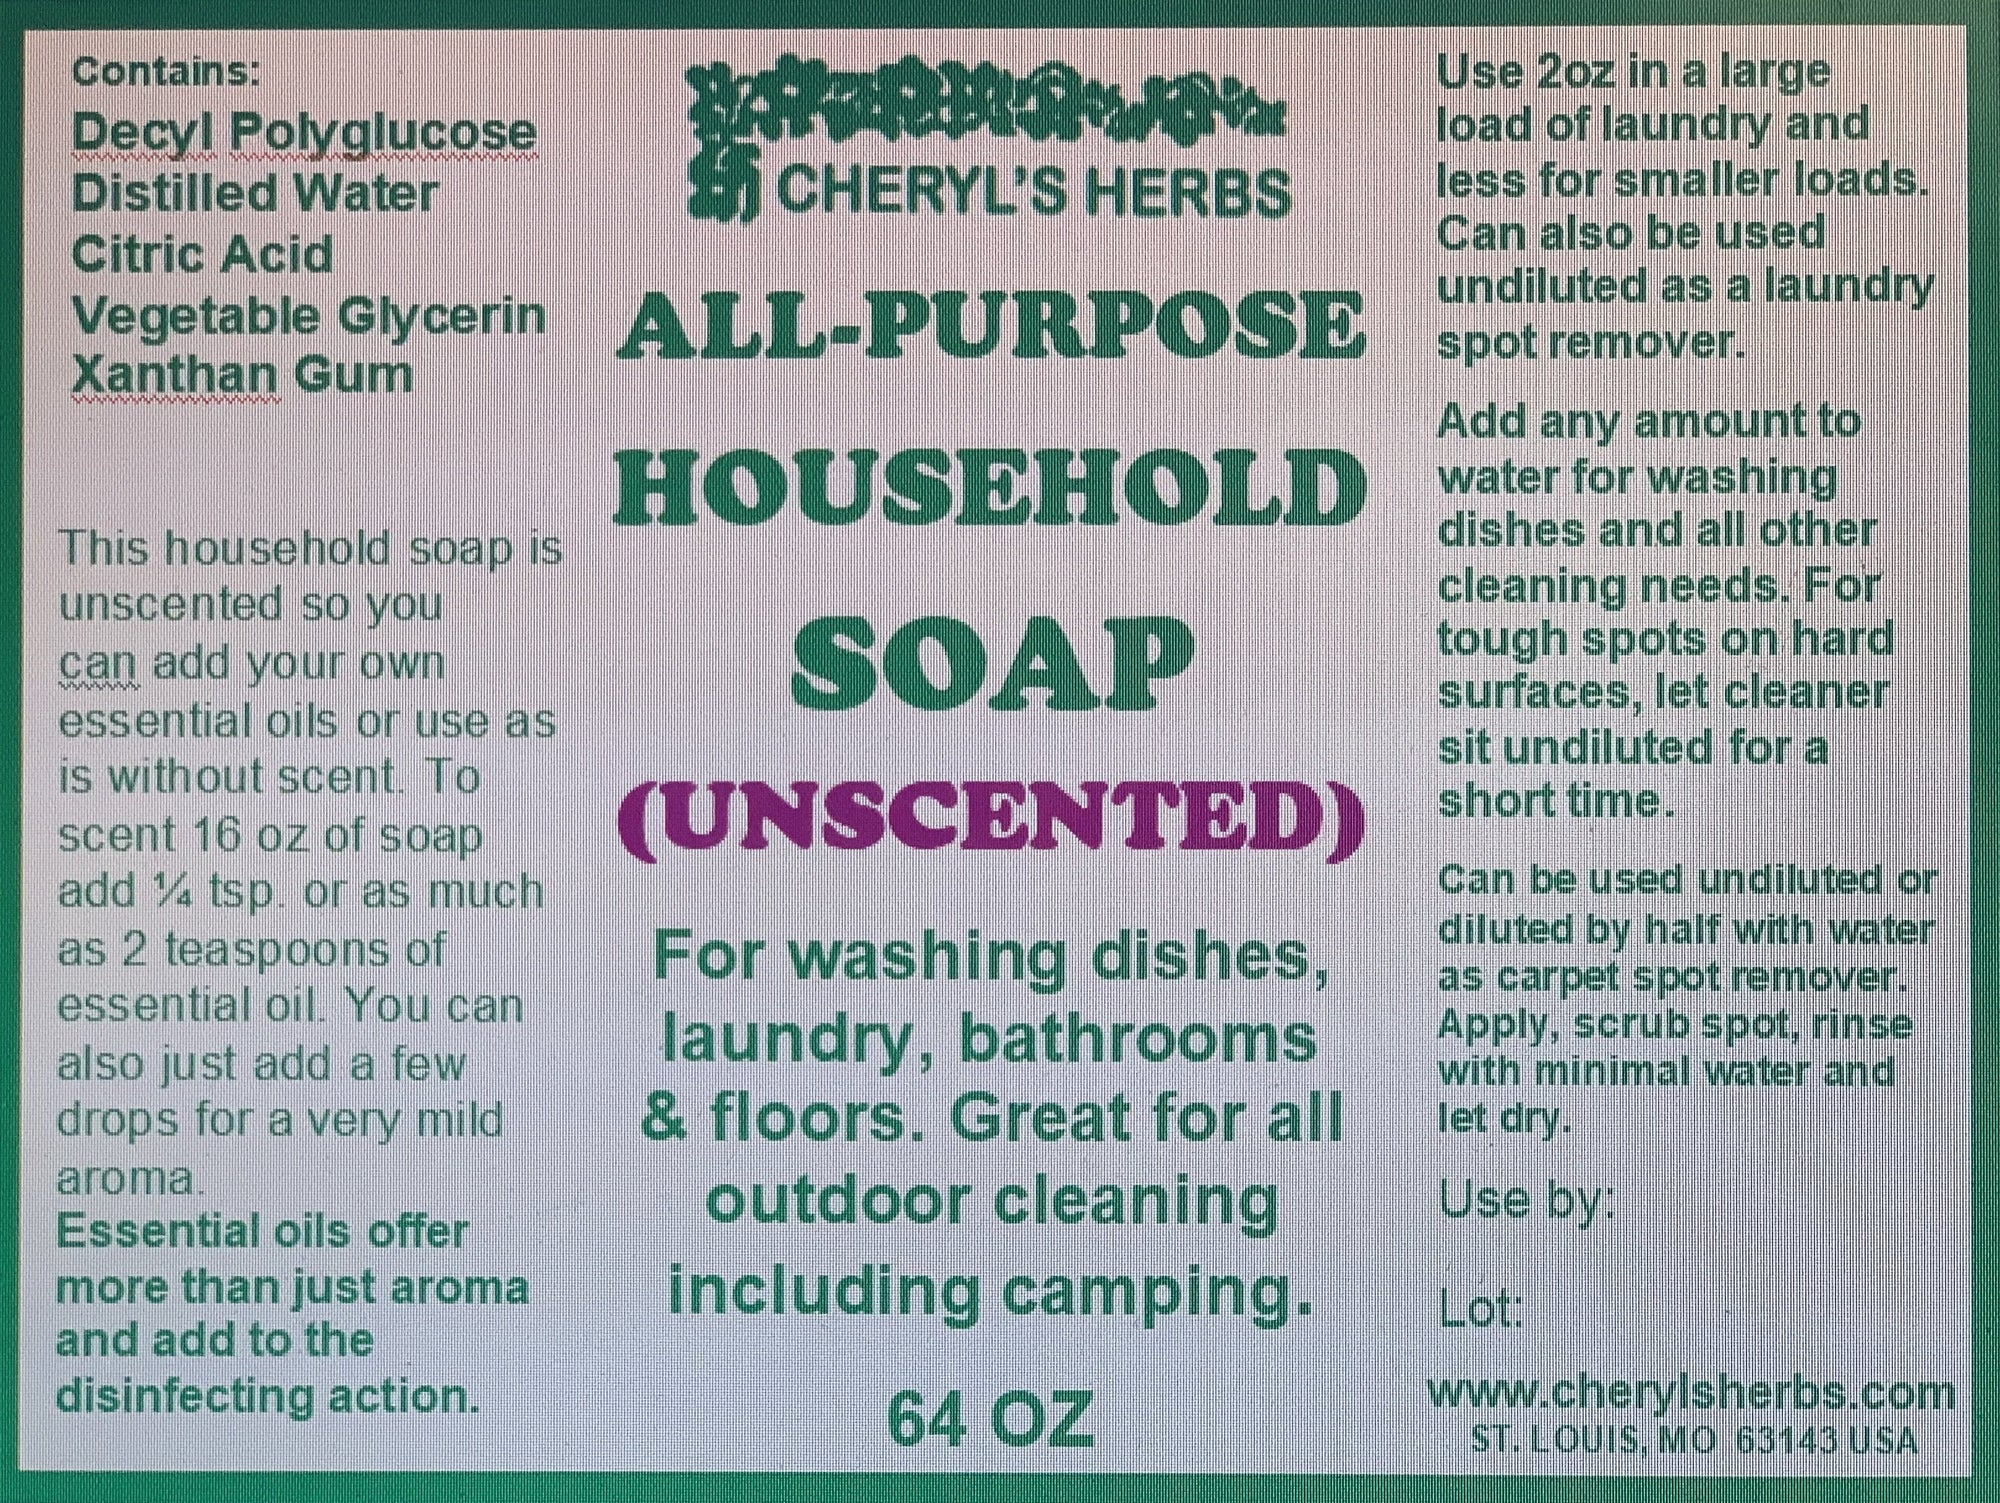 ALL PURPOSE HOUSEHOLD SOAP UNSCENTED - Cheryls Herbs